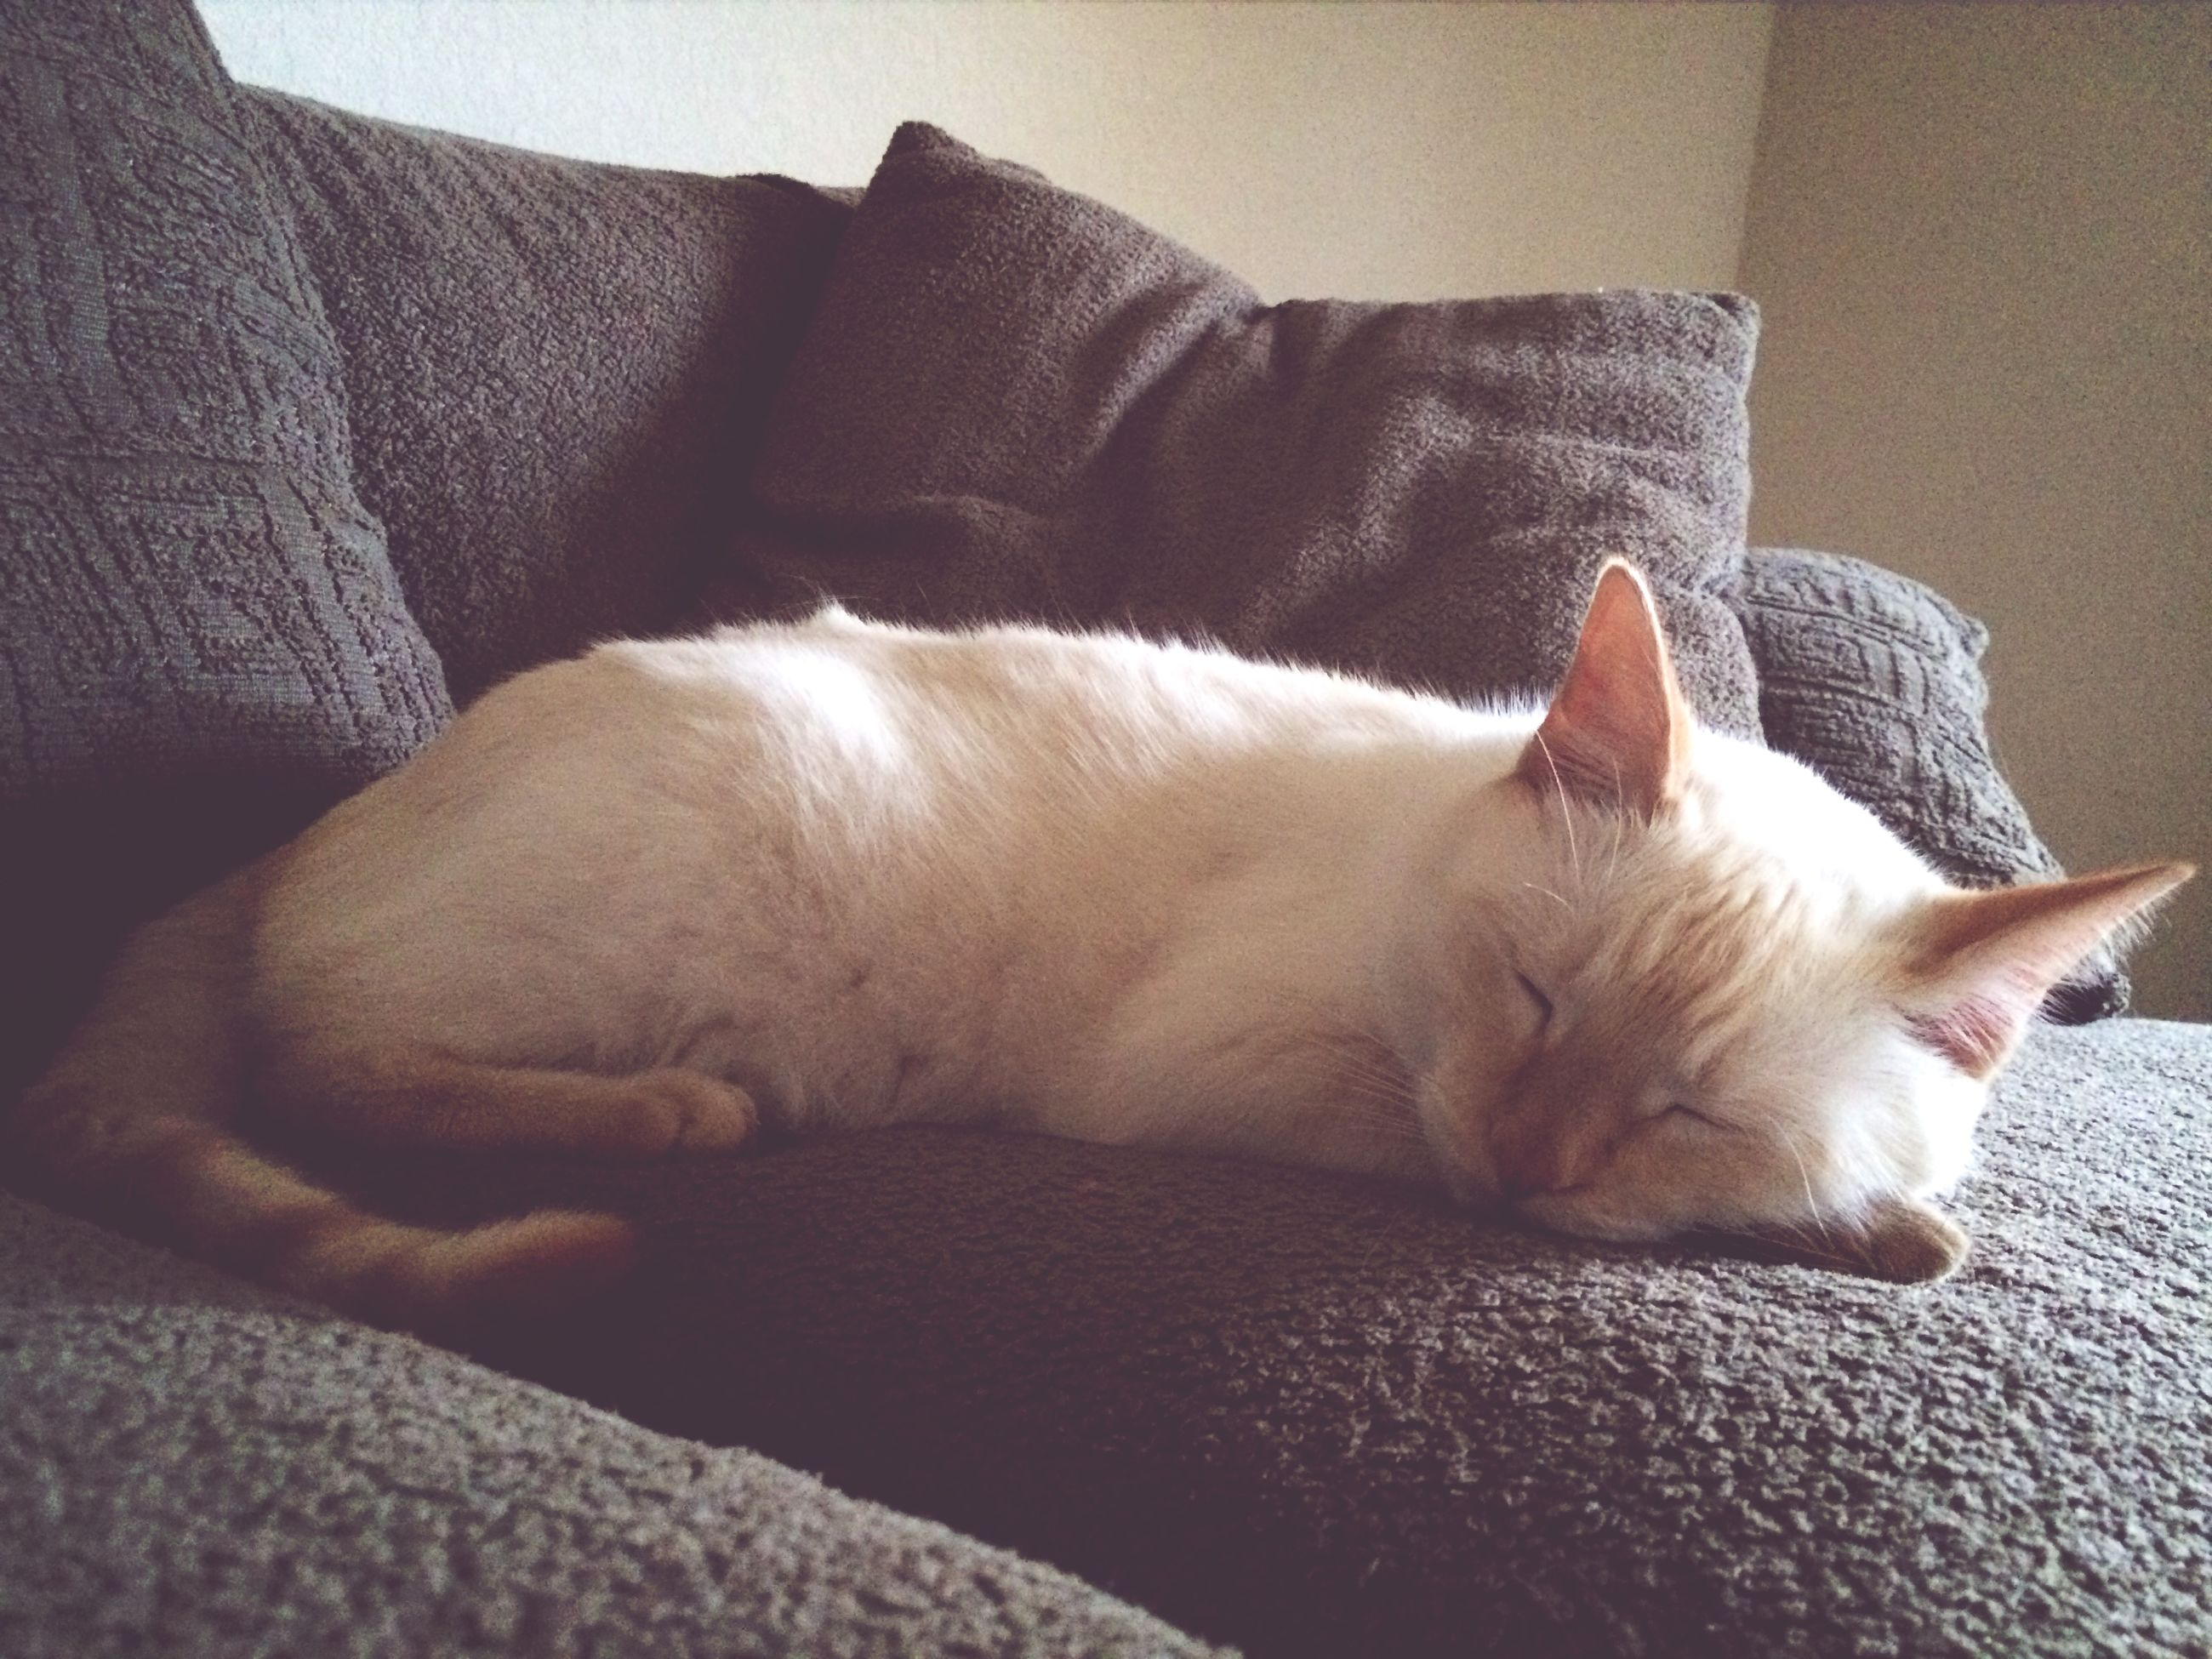 pets, domestic animals, domestic cat, cat, animal themes, mammal, relaxation, one animal, indoors, feline, resting, lying down, sleeping, bed, whisker, eyes closed, white color, home interior, close-up, comfortable